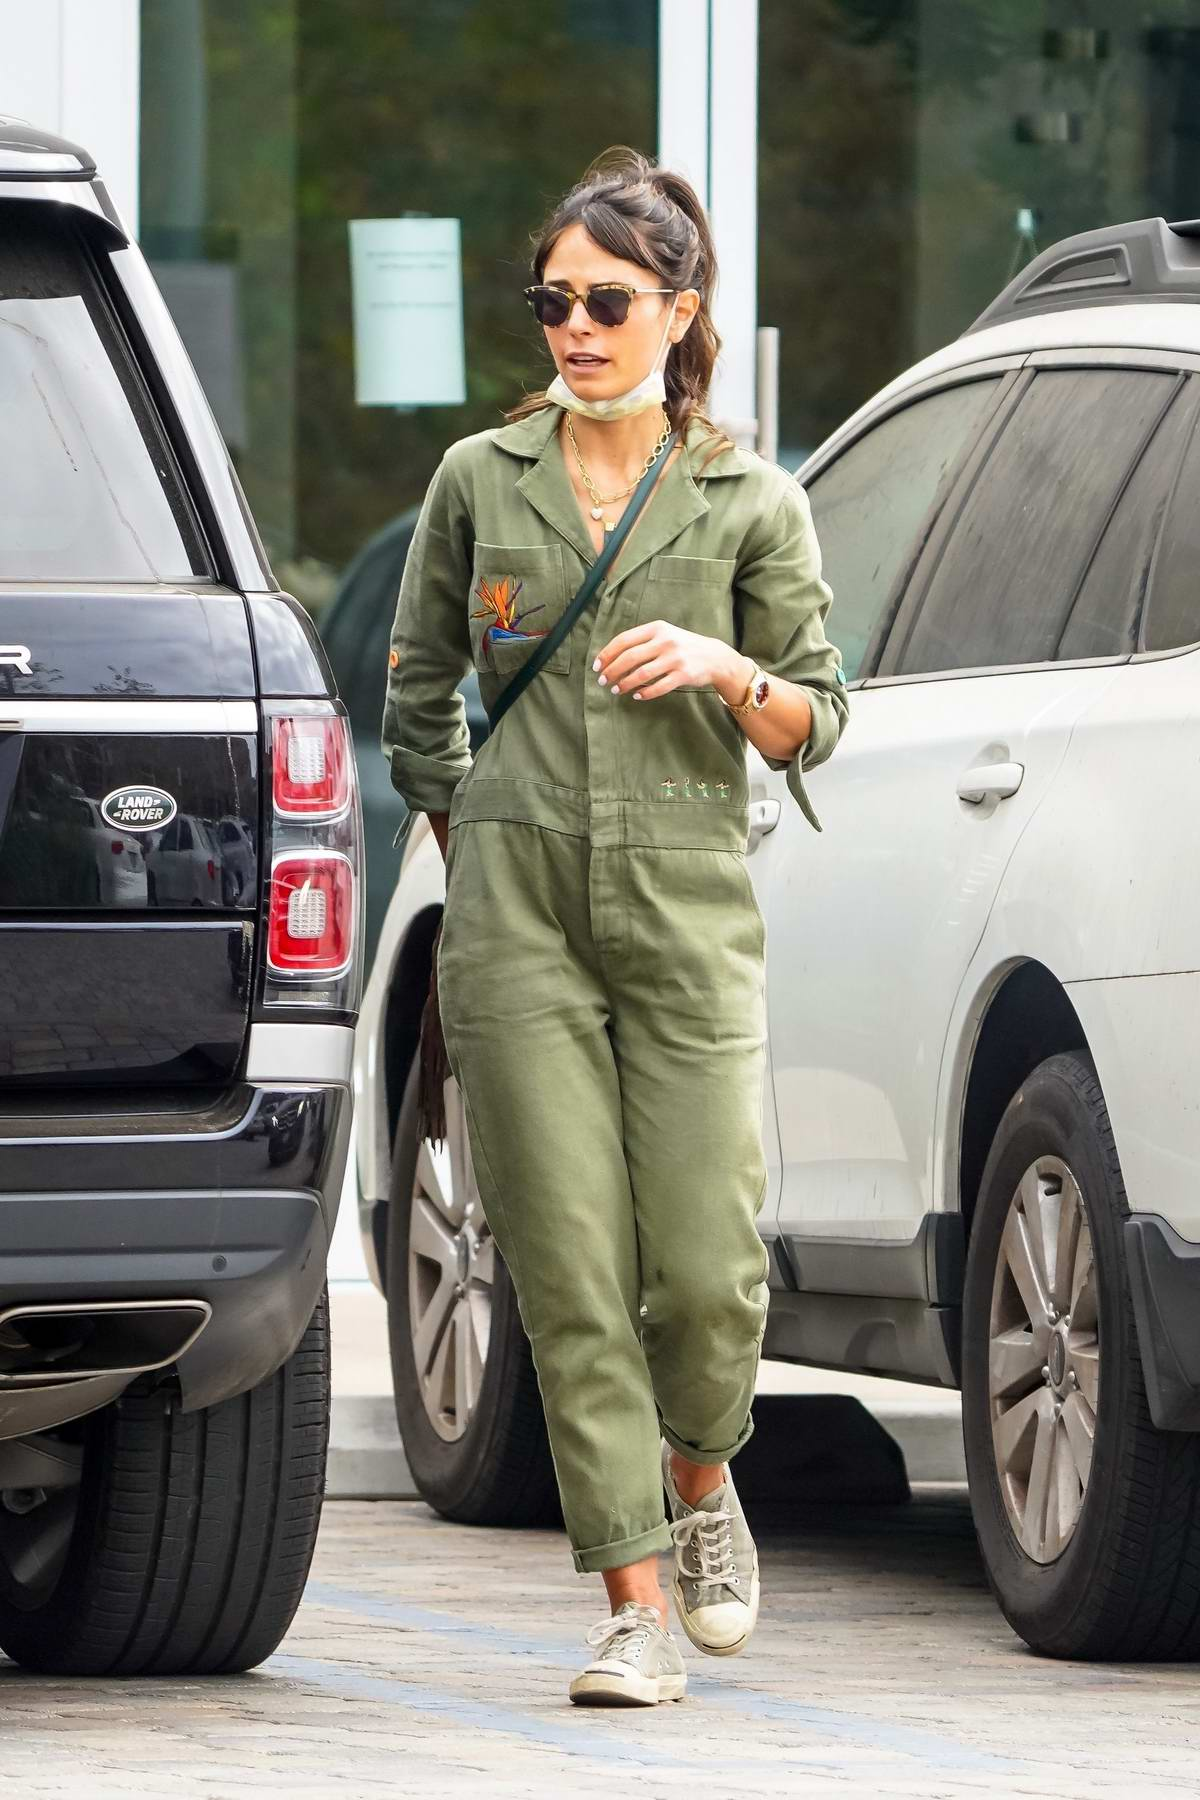 Jordana Brewster wears a green jumpsuit while out for walk with her dog in Malibu, California